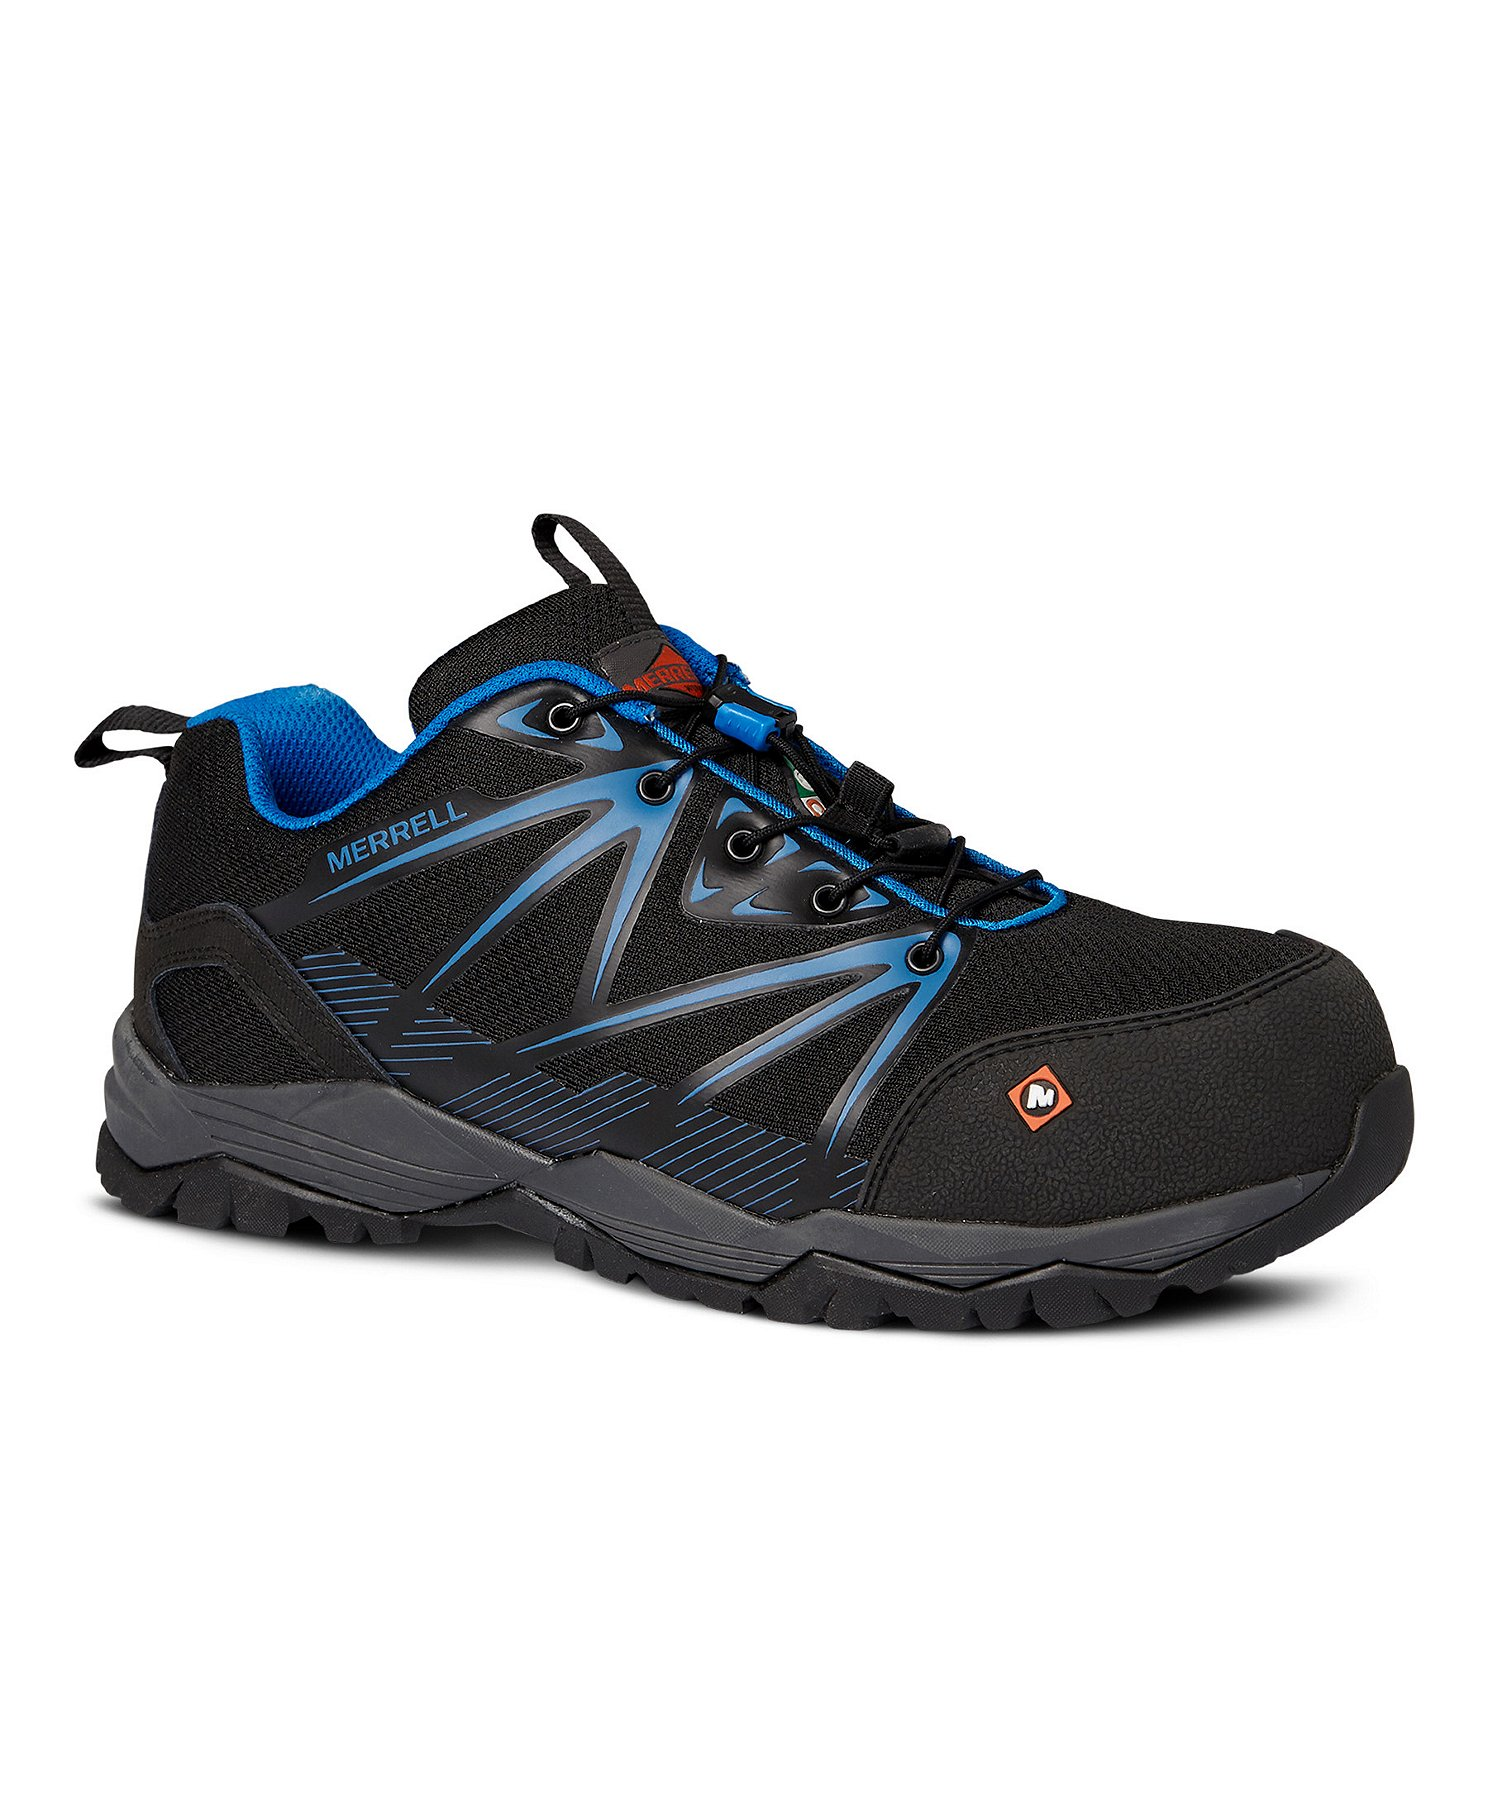 afcbfe10 Men's Work Full Bench Composite Toe Composite Plate CSA Safety Hiking Shoes